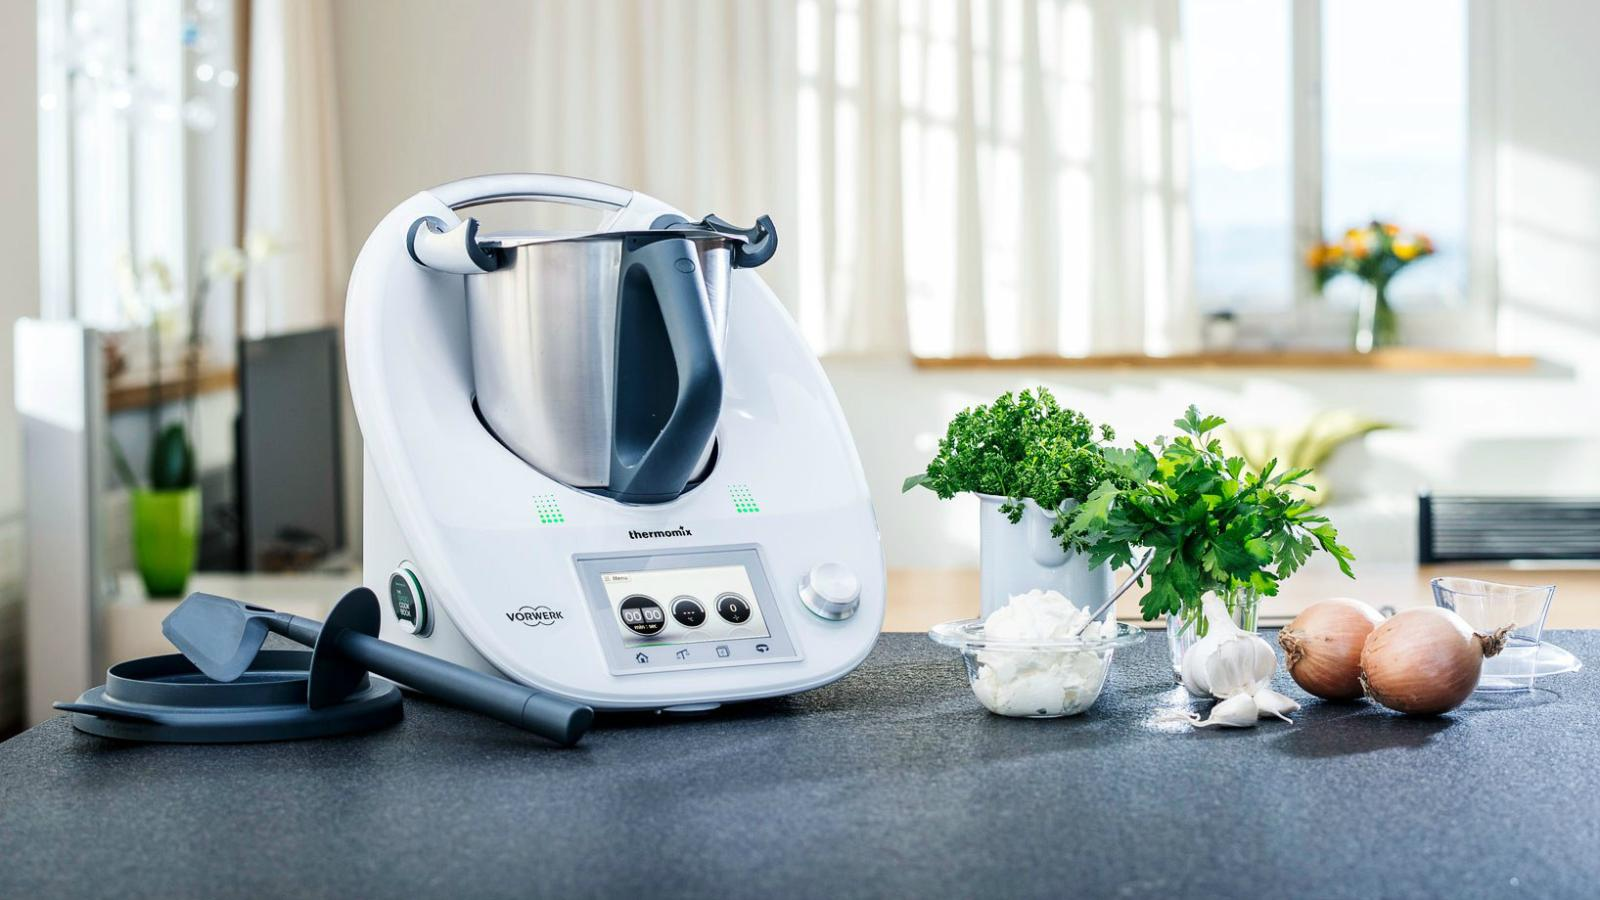 Incredible Thermomix Vorwerks 1 450 Kitchen Appliance Is Coming To Machost Co Dining Chair Design Ideas Machostcouk